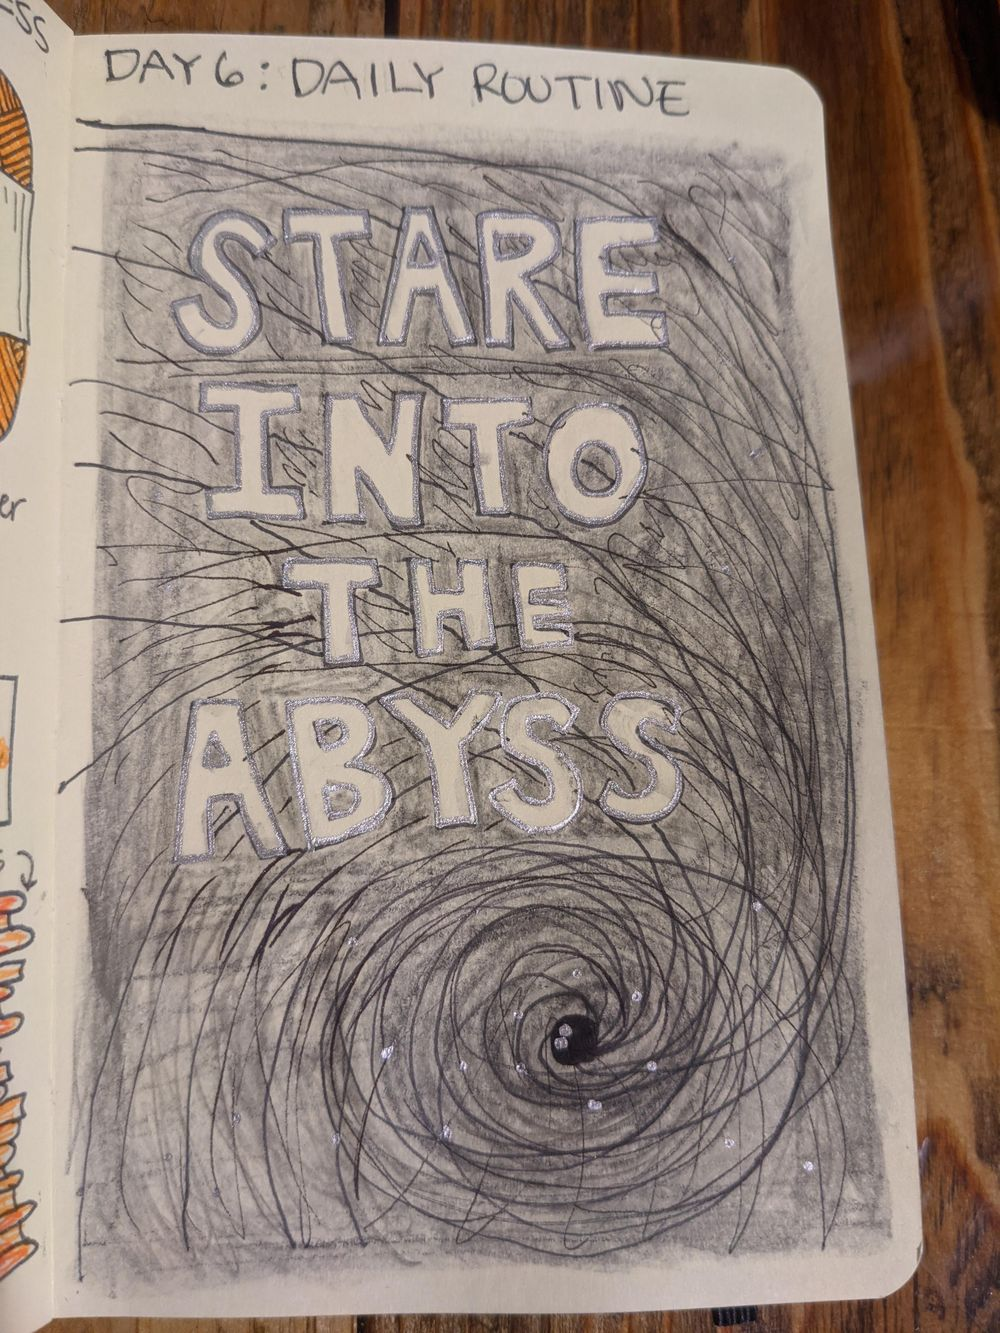 tessa (illustrated journaling 14-day) - image 6 - student project